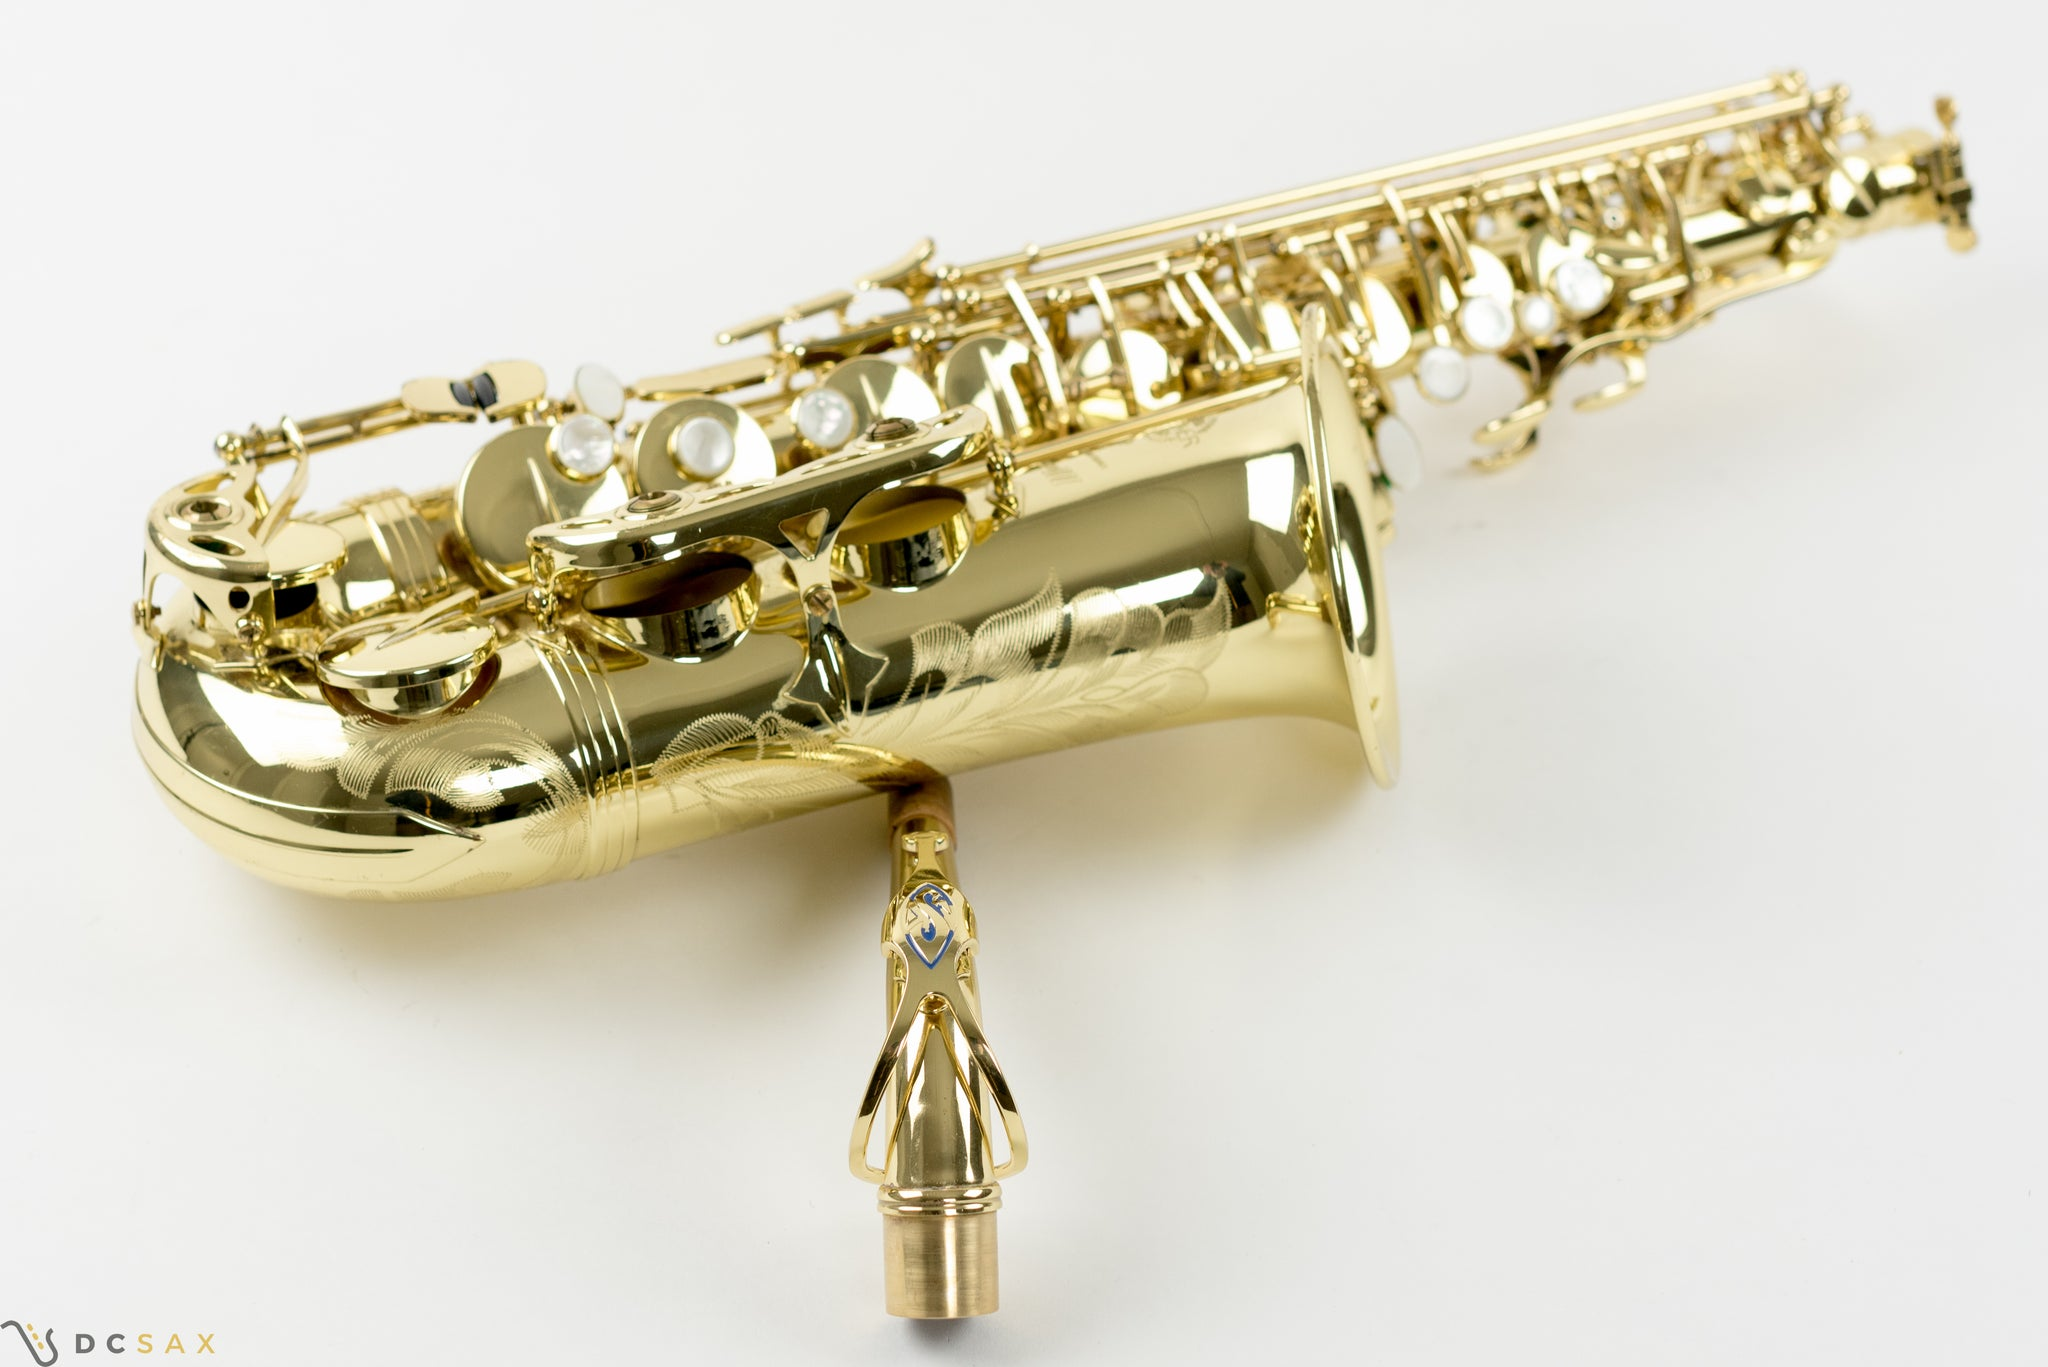 Selmer Series III Alto Saxophone, Just Serviced, Near Mint